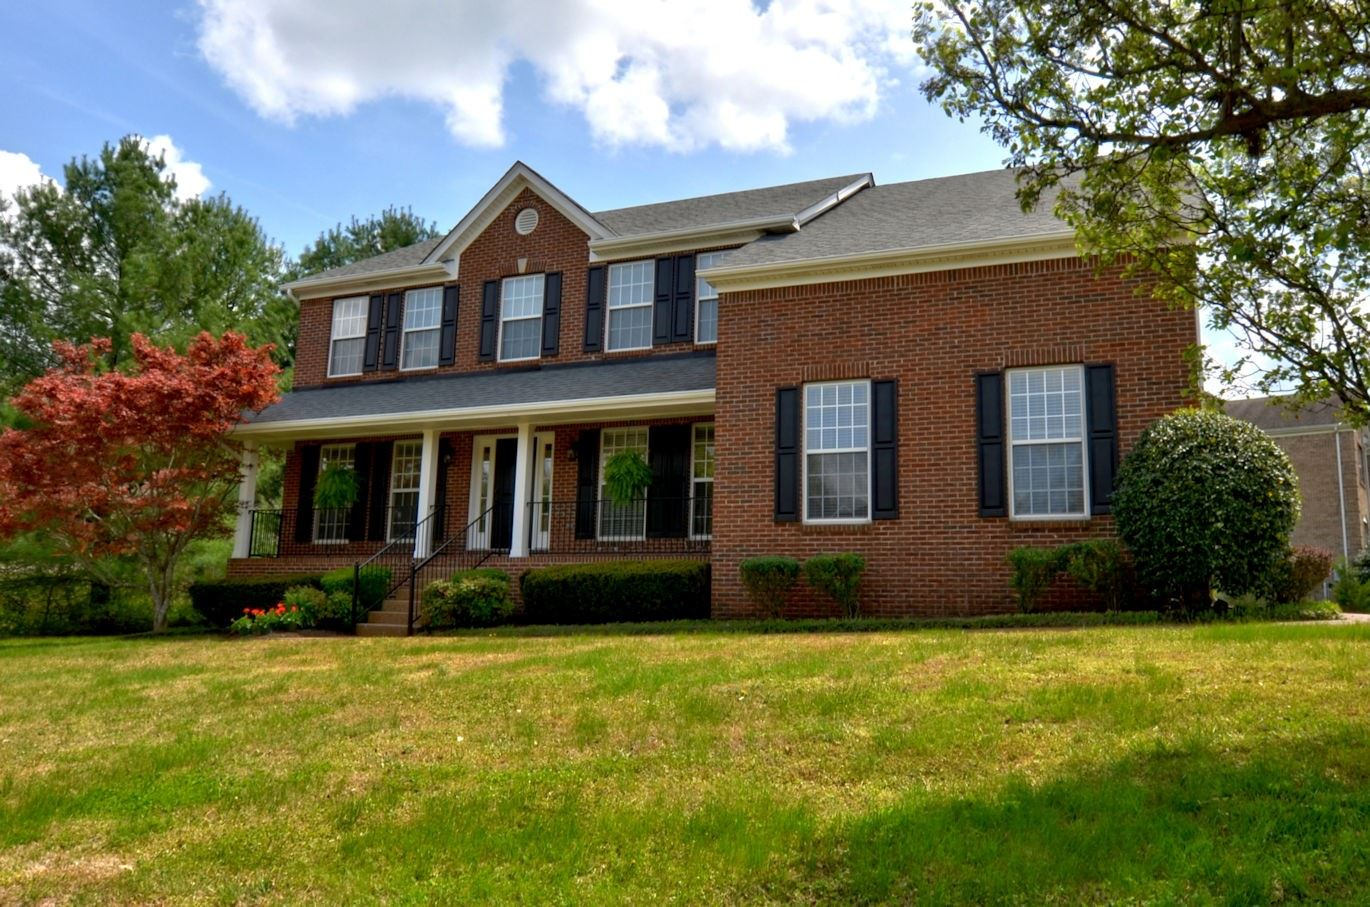 300 Sweetwater Ct, Brentwood, TN 37027 - MLS#: 2242988